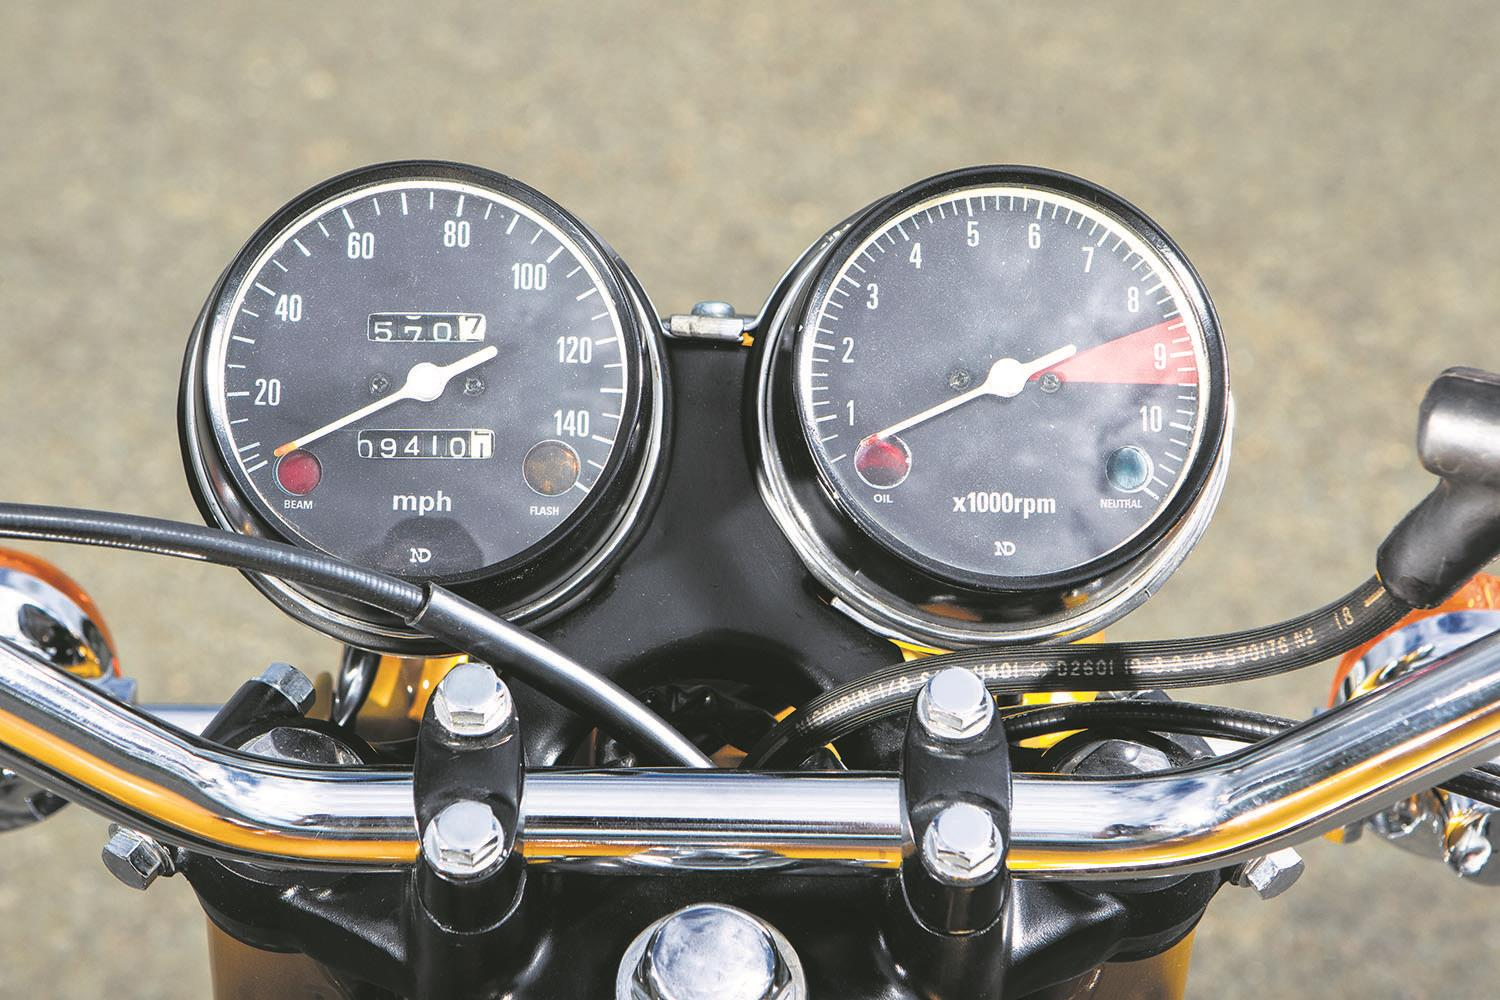 Honda CB750 clocks